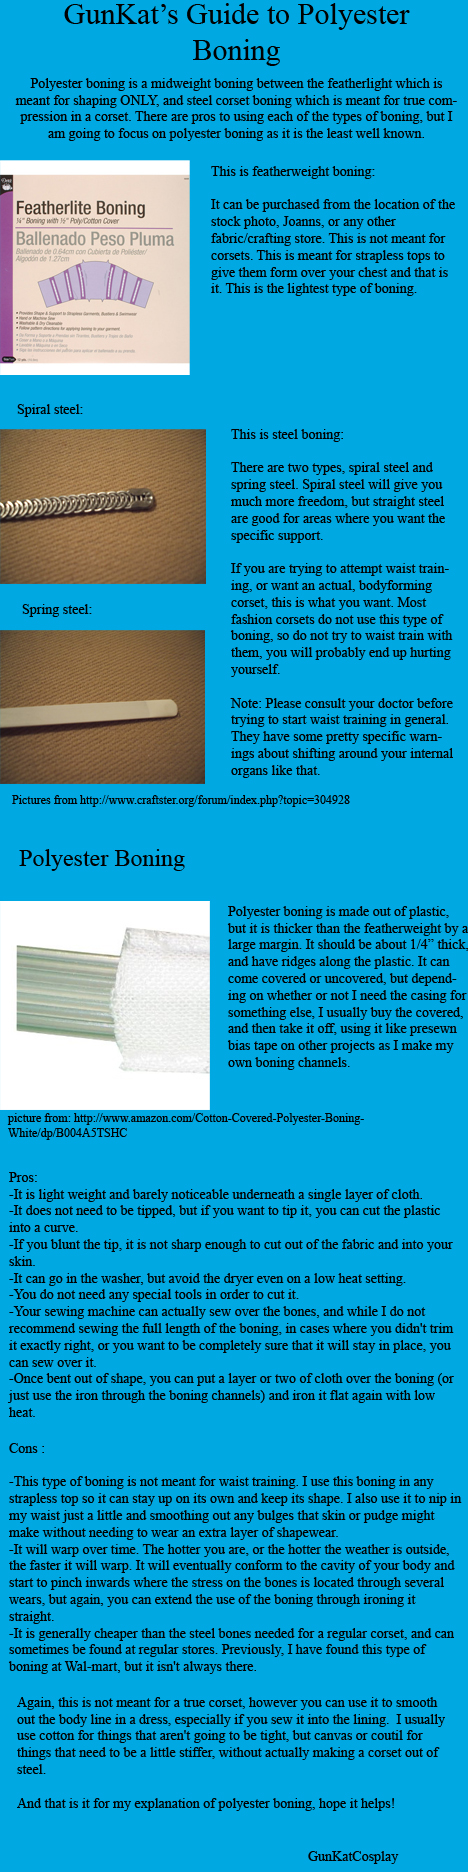 Introduction to Polyester Boning by GunKatCosplay